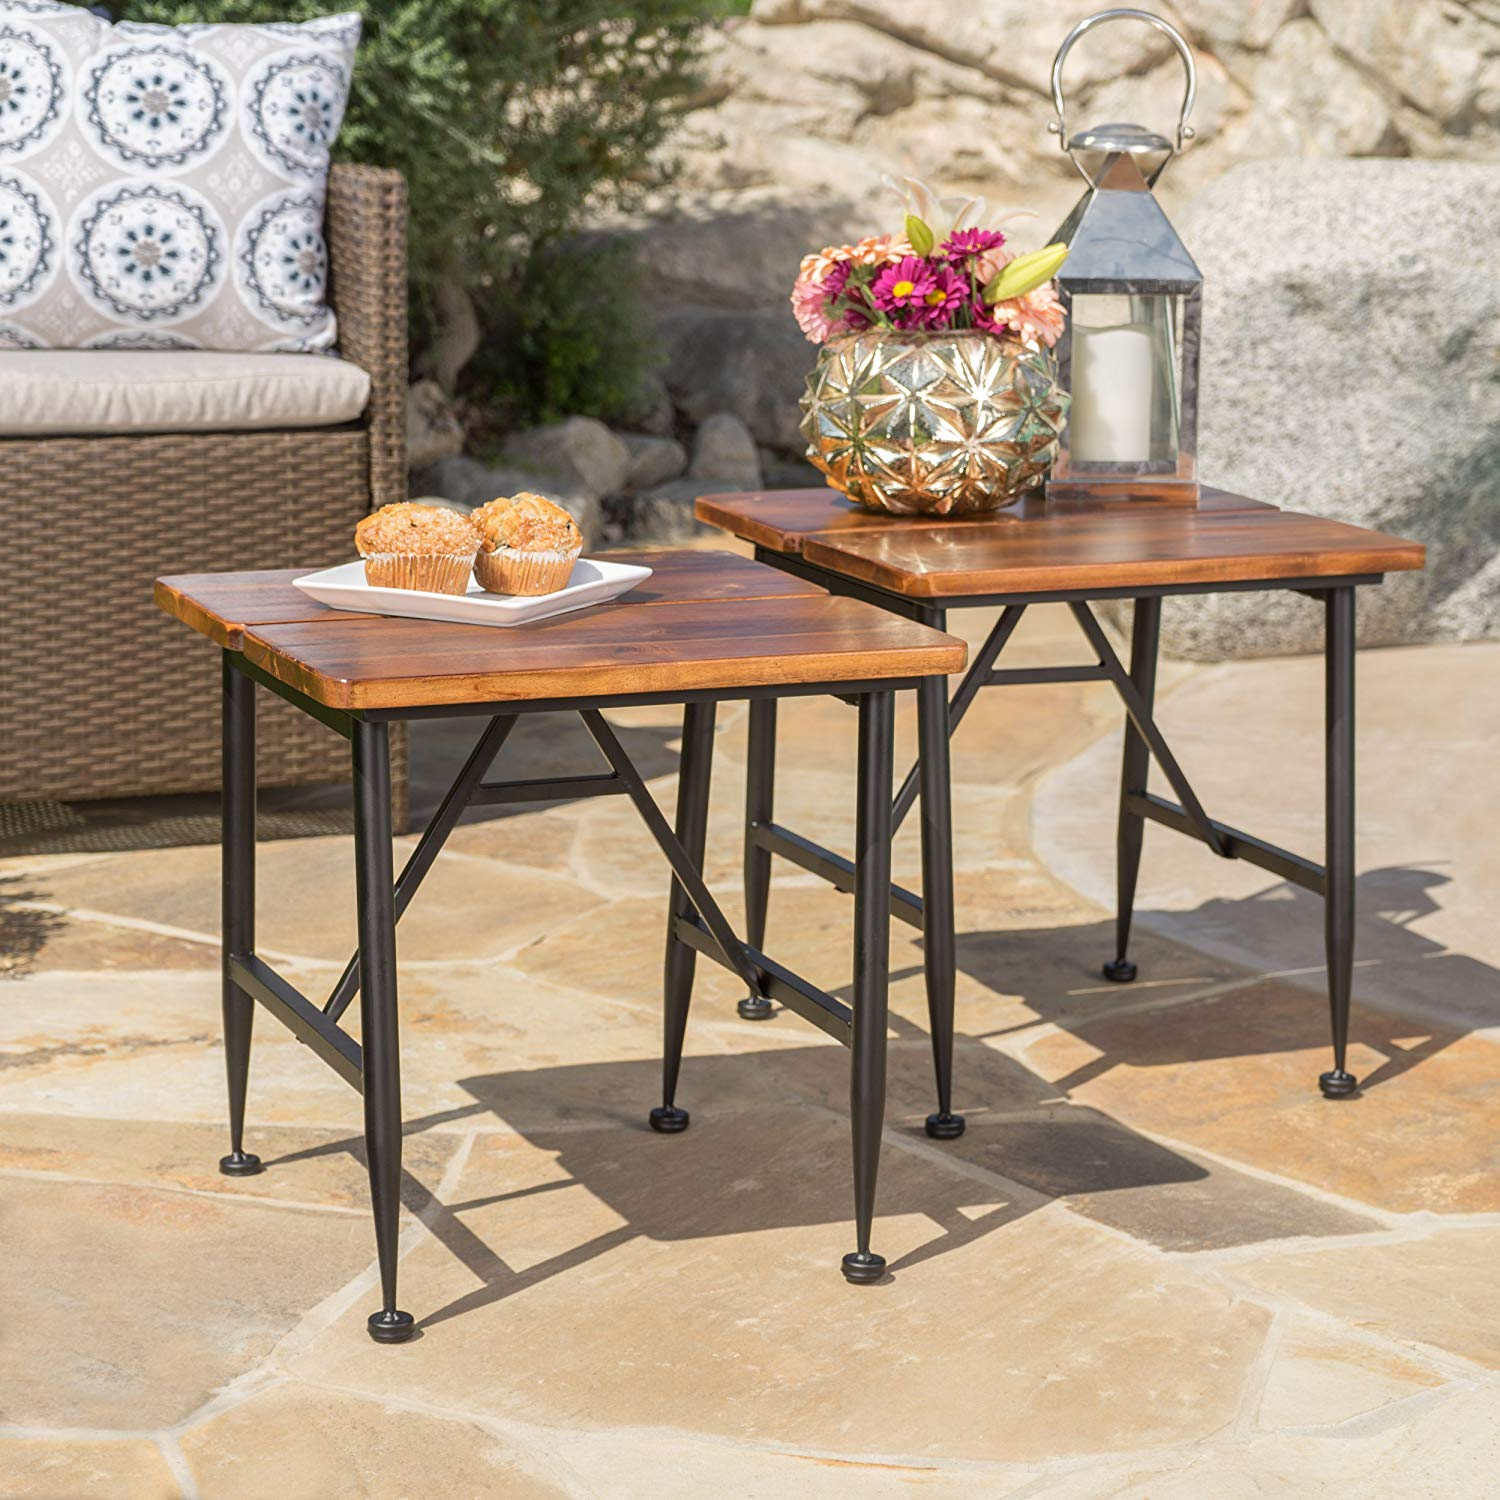 ophelia outdoor industrial acacia wood accent table itclfal iron quantity kitchen dining foosball backyard nic solid marble side stacking tables astoria grand bedroom furniture